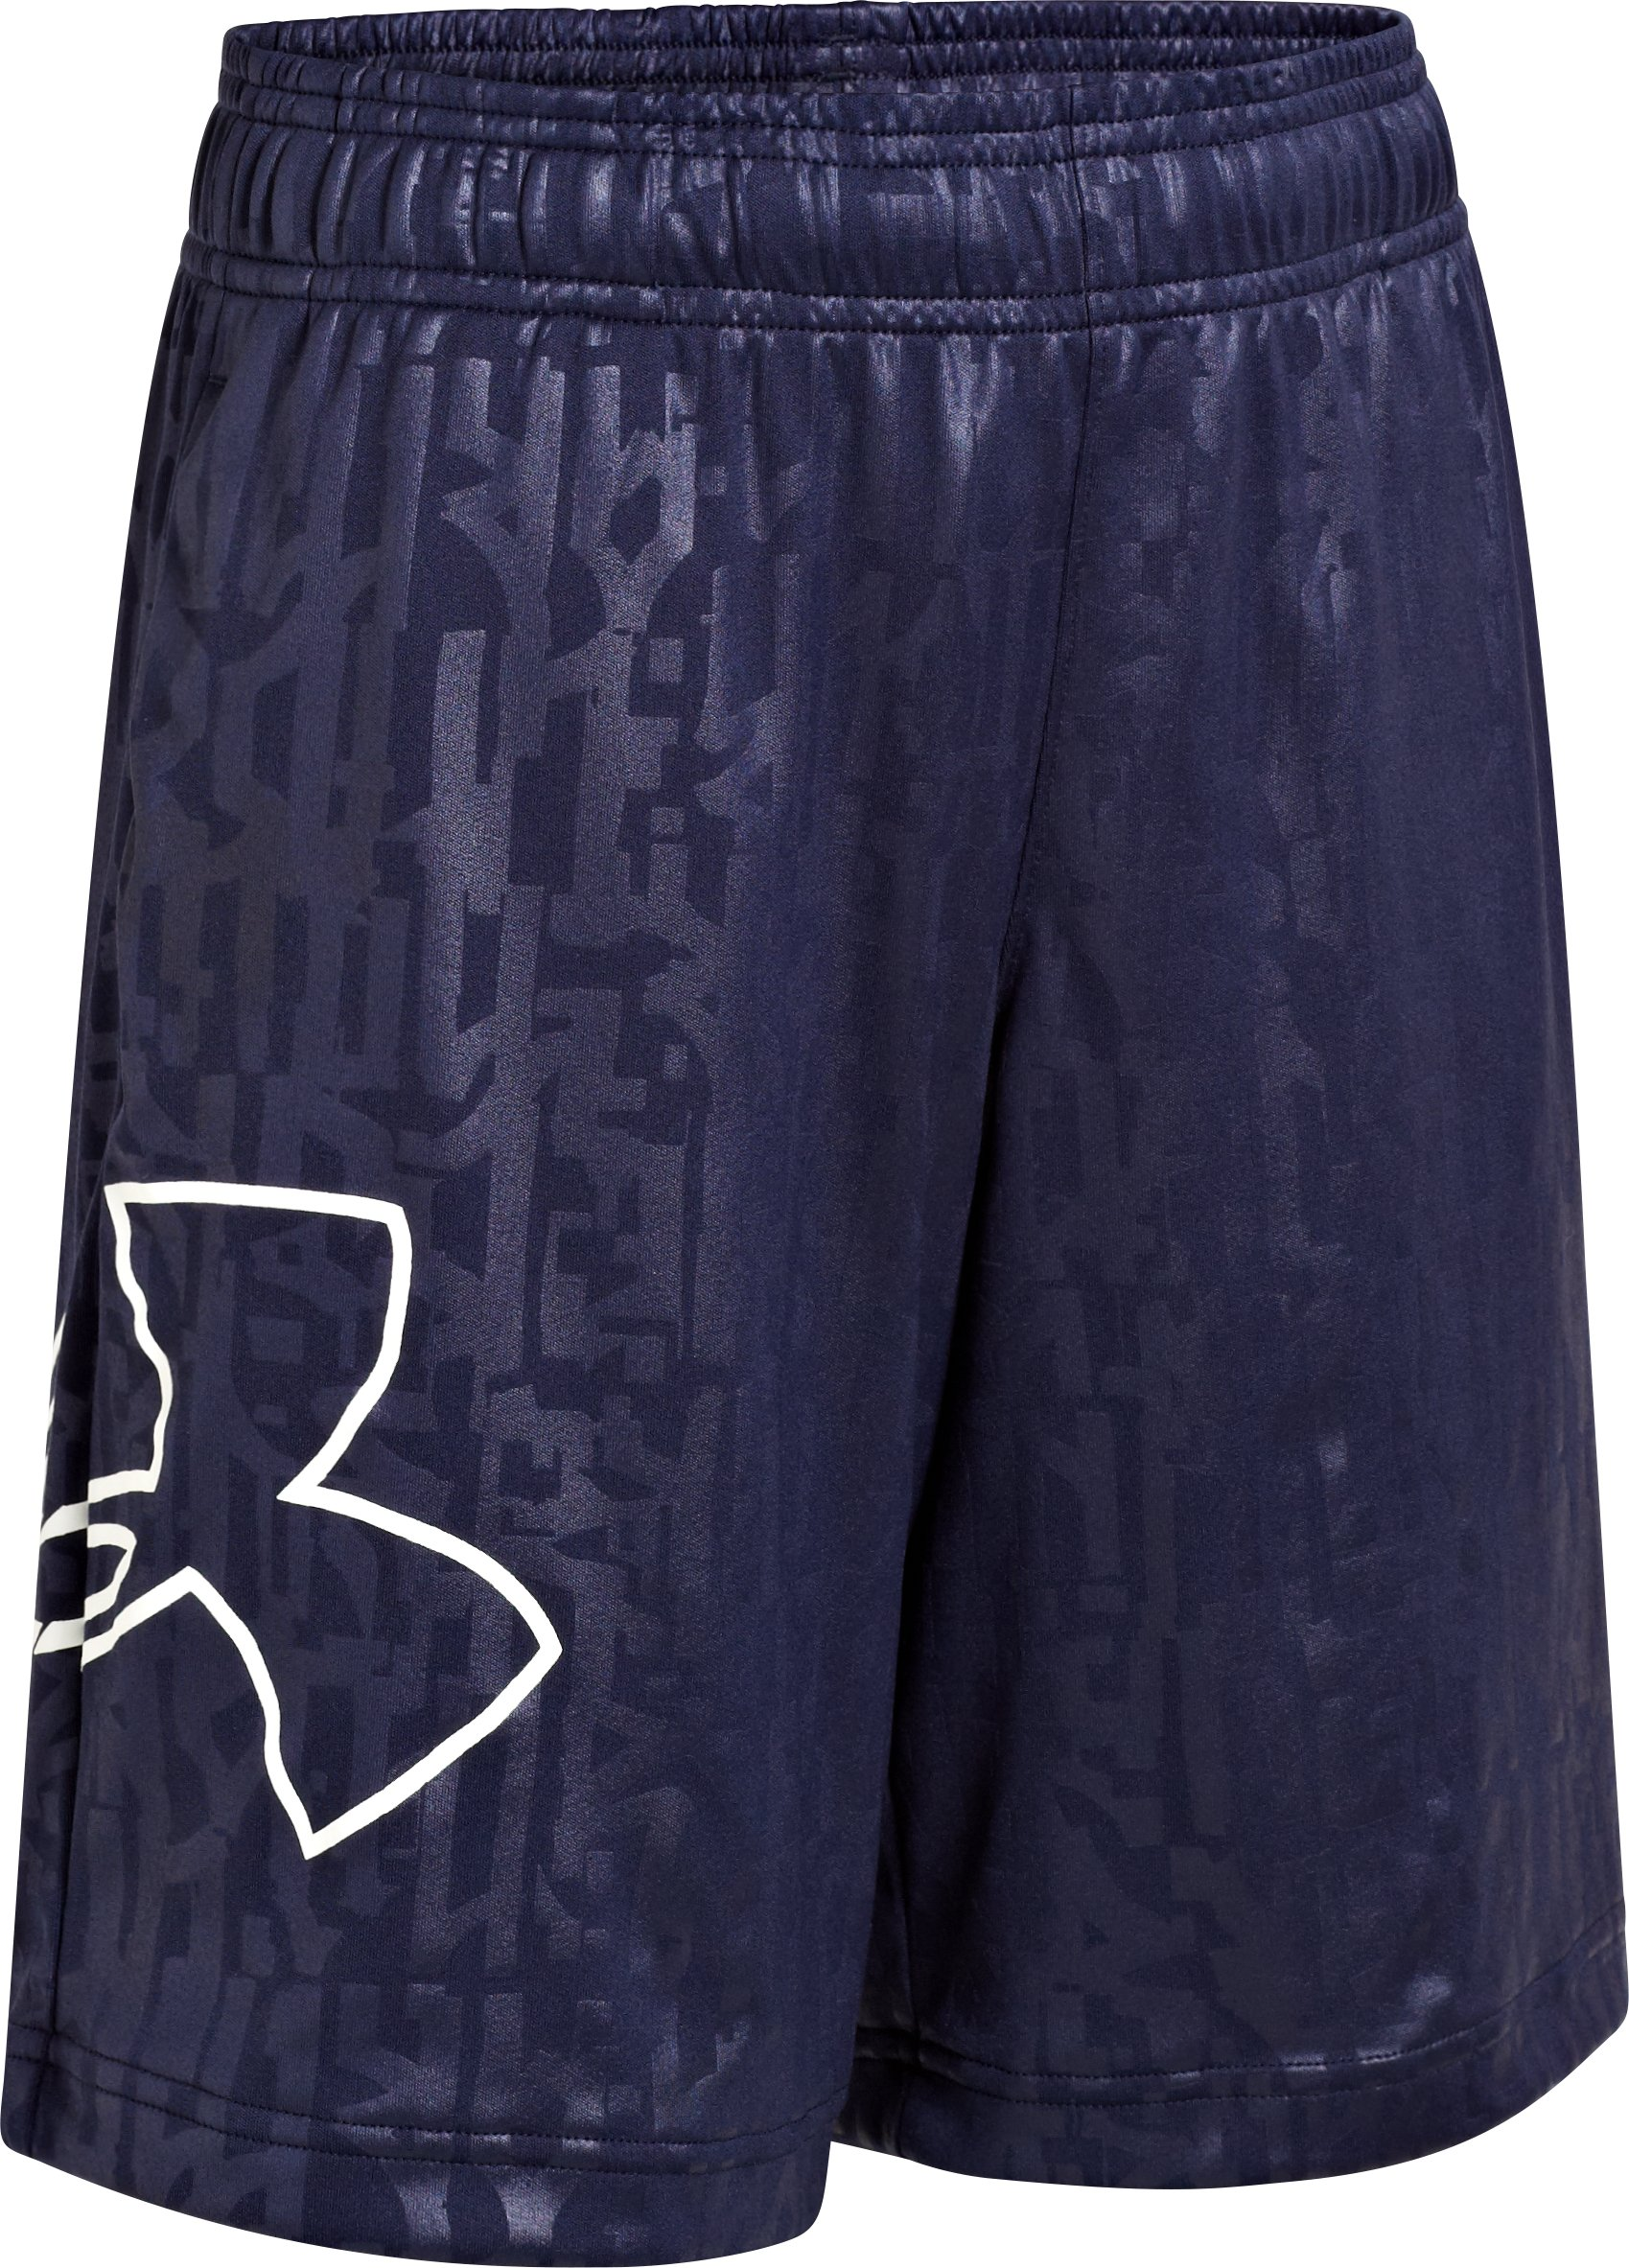 Boys' UA Allover Shorts, Midnight Navy, undefined